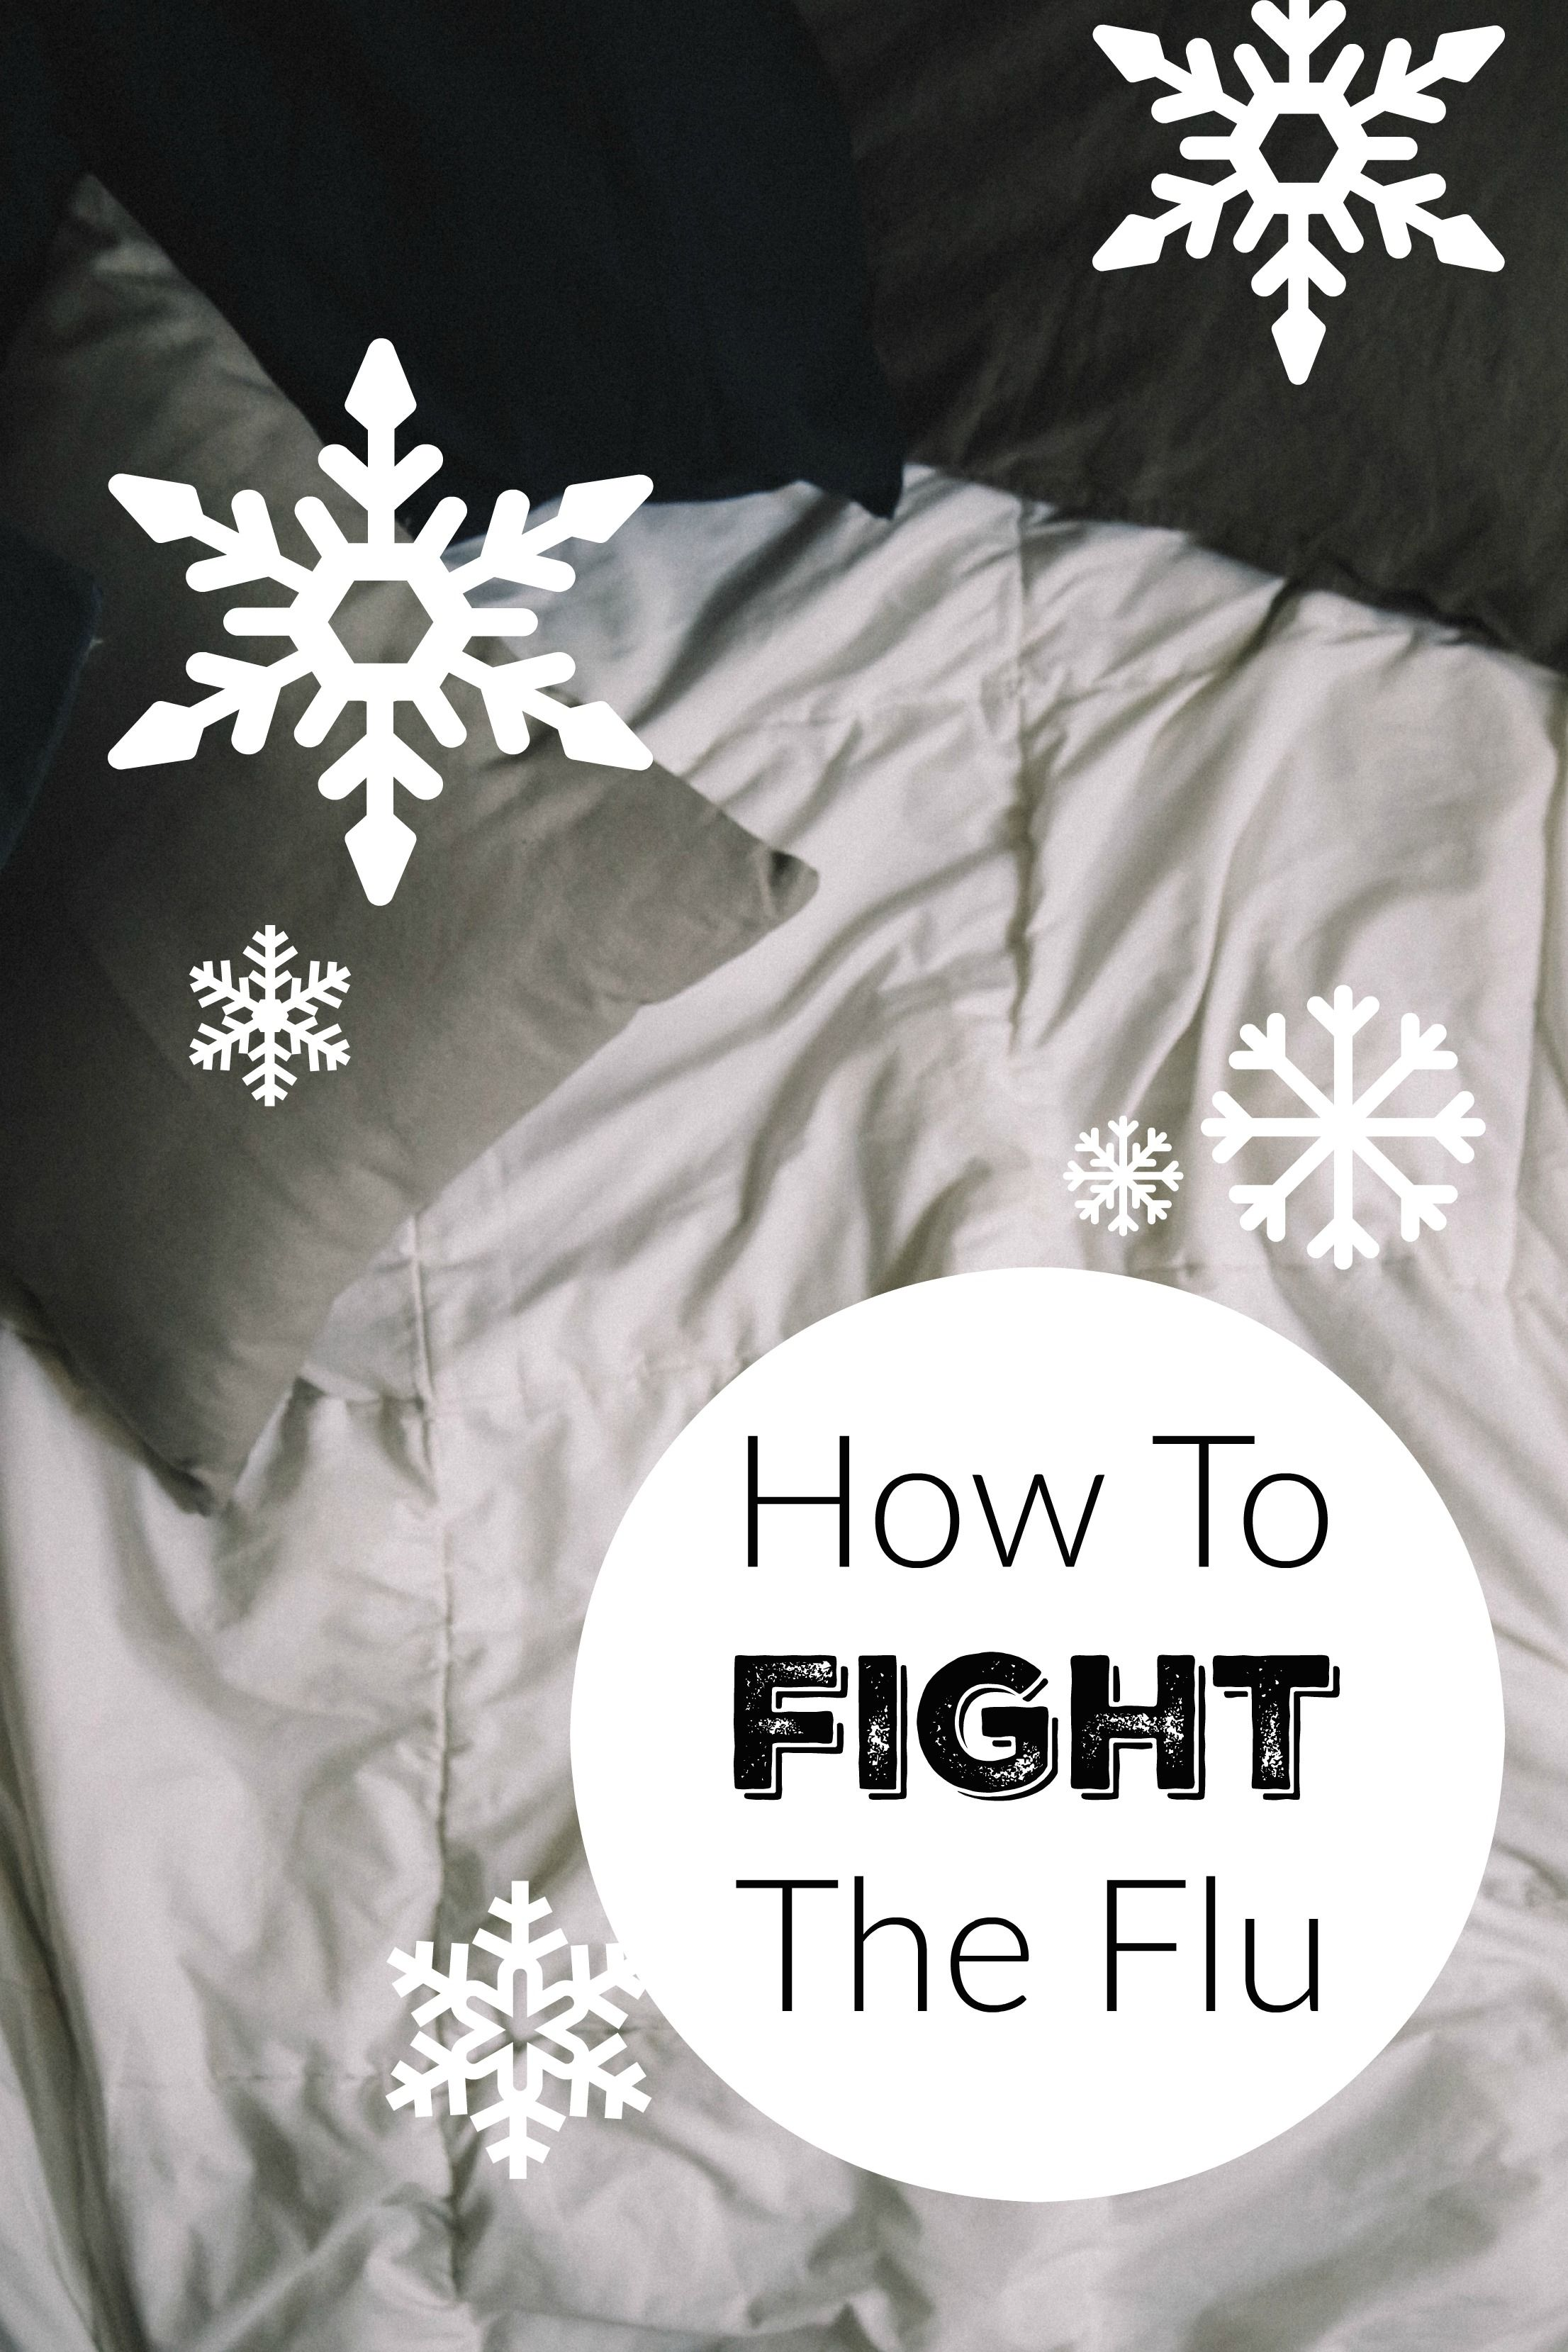 The flu nearly ruined our holidays last year. Find out what I'll be doing differently to fight the flu if it strikes again. (#ad)